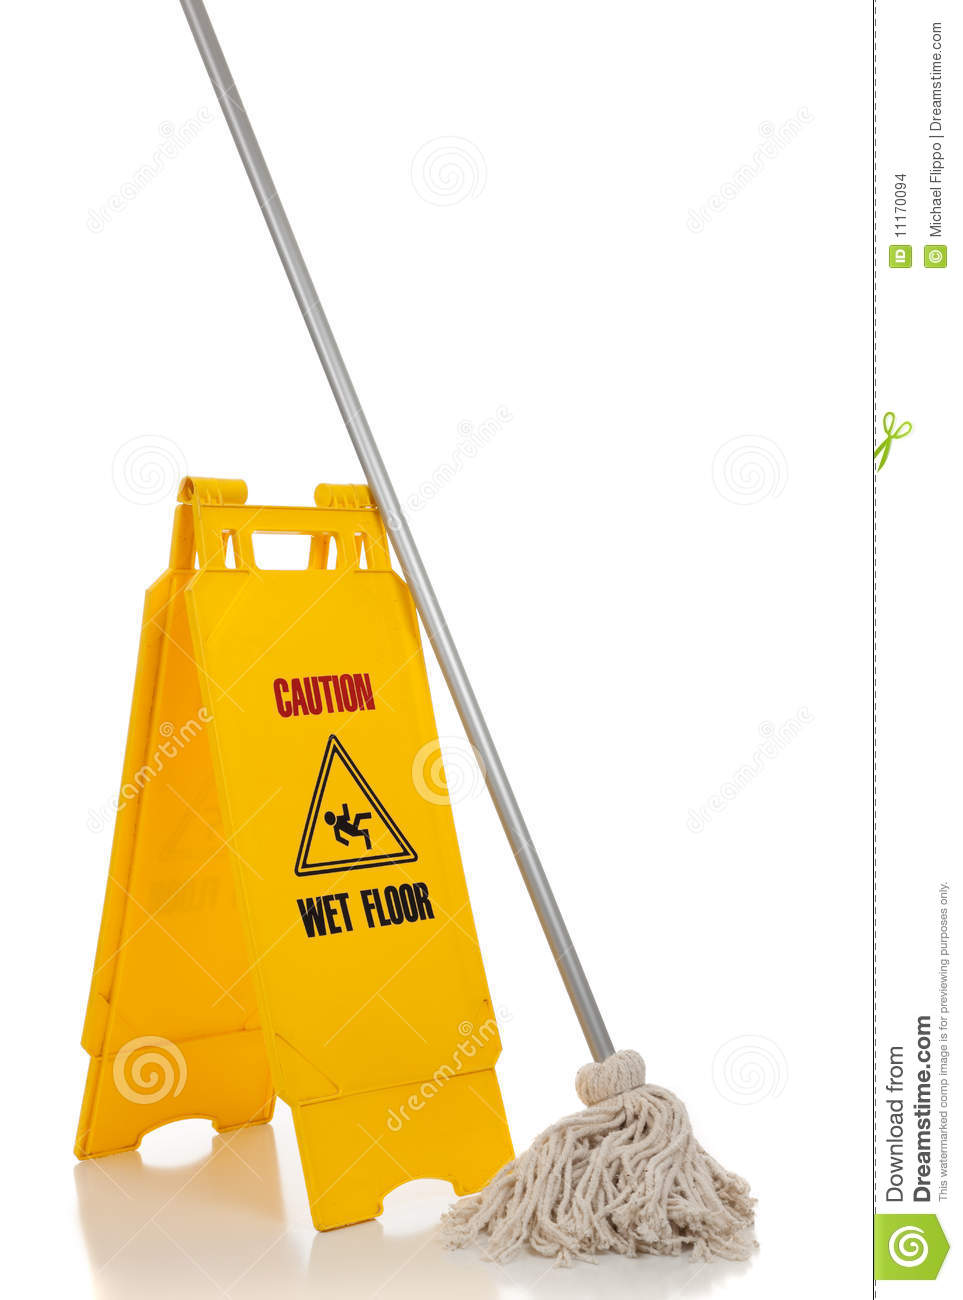 Wet floor sign and mop on white background stock images for Floor banner